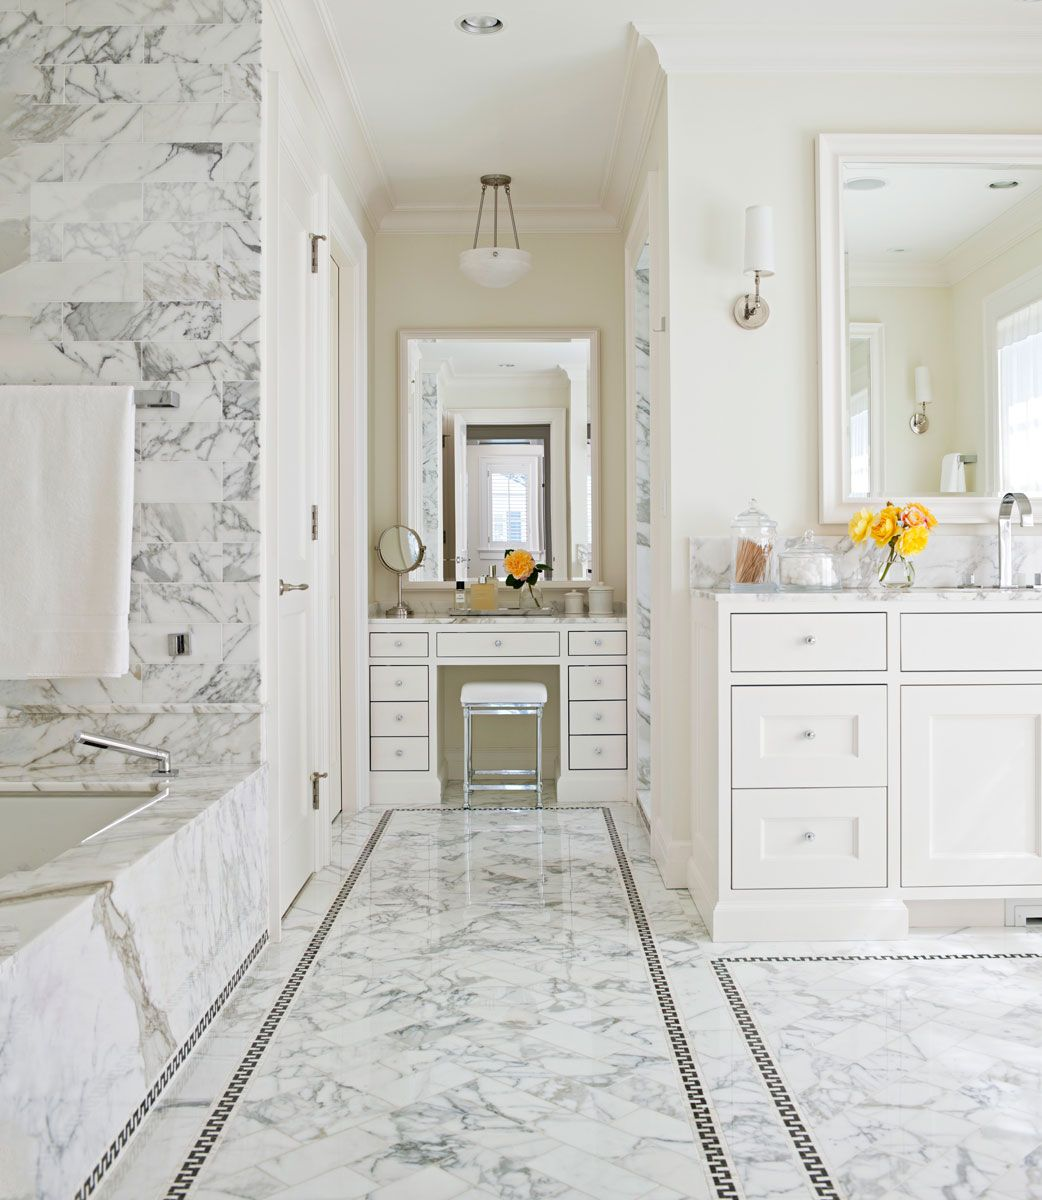 Marble Design Ideas For Your Master Bath Bathroom Interior Design Bathroom Interior Bathrooms Remodel